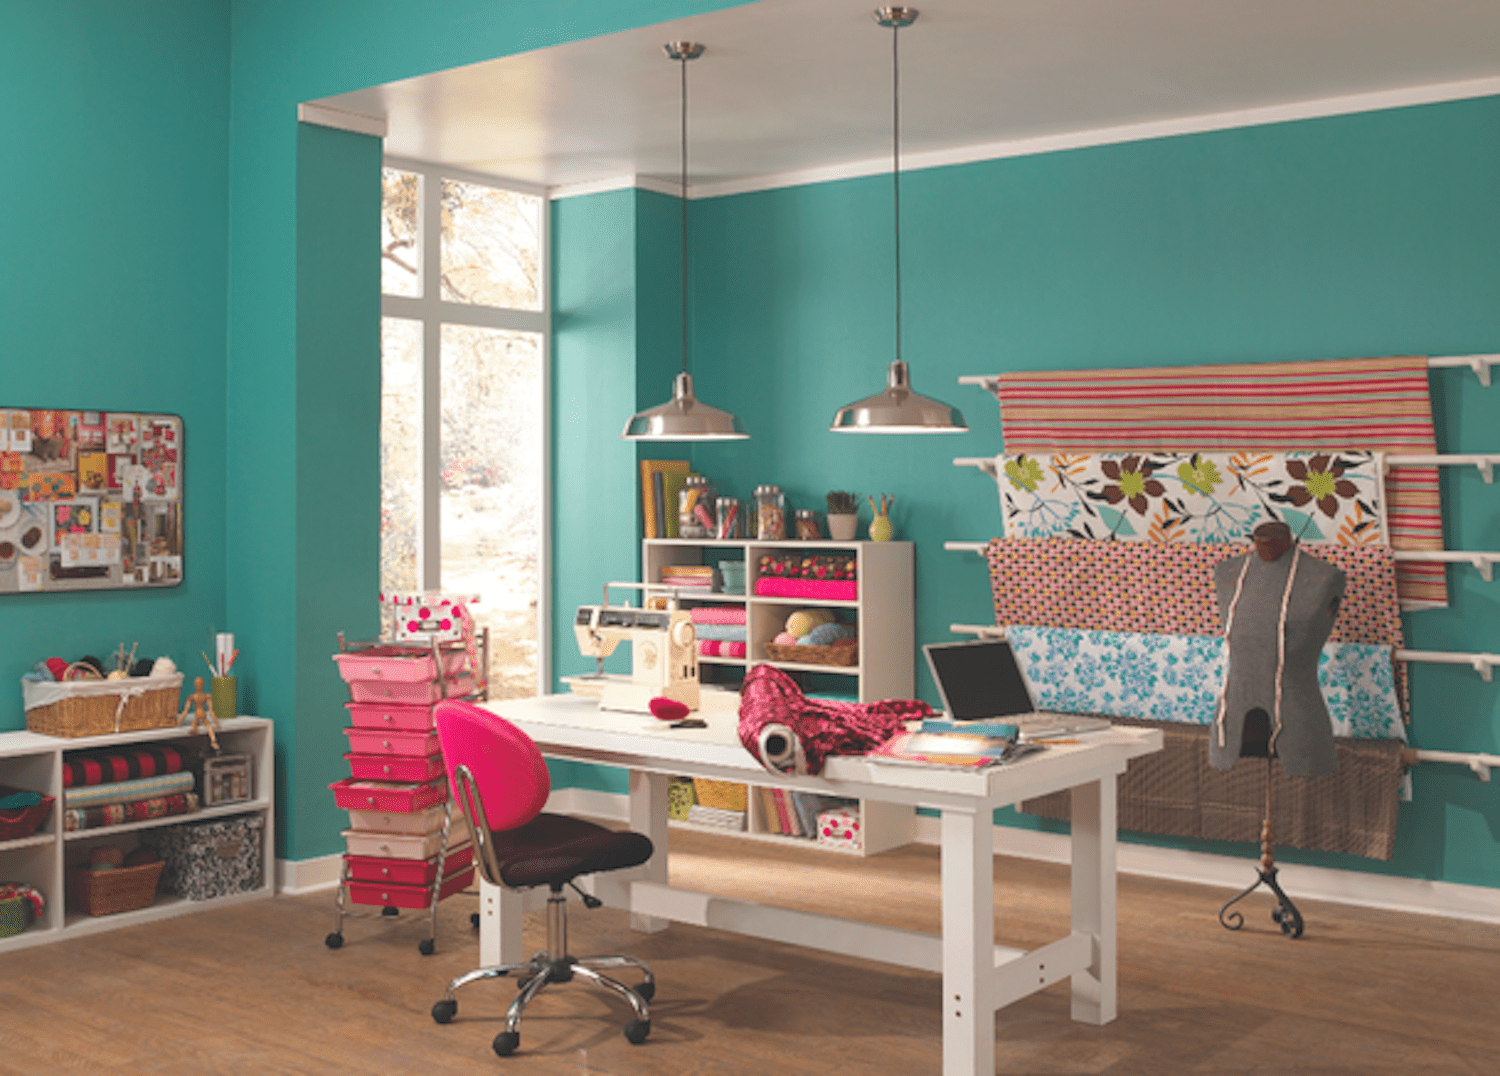 When Painting A Home Office Colors Like Green And Purple Are Suggested For Their Calming Effect